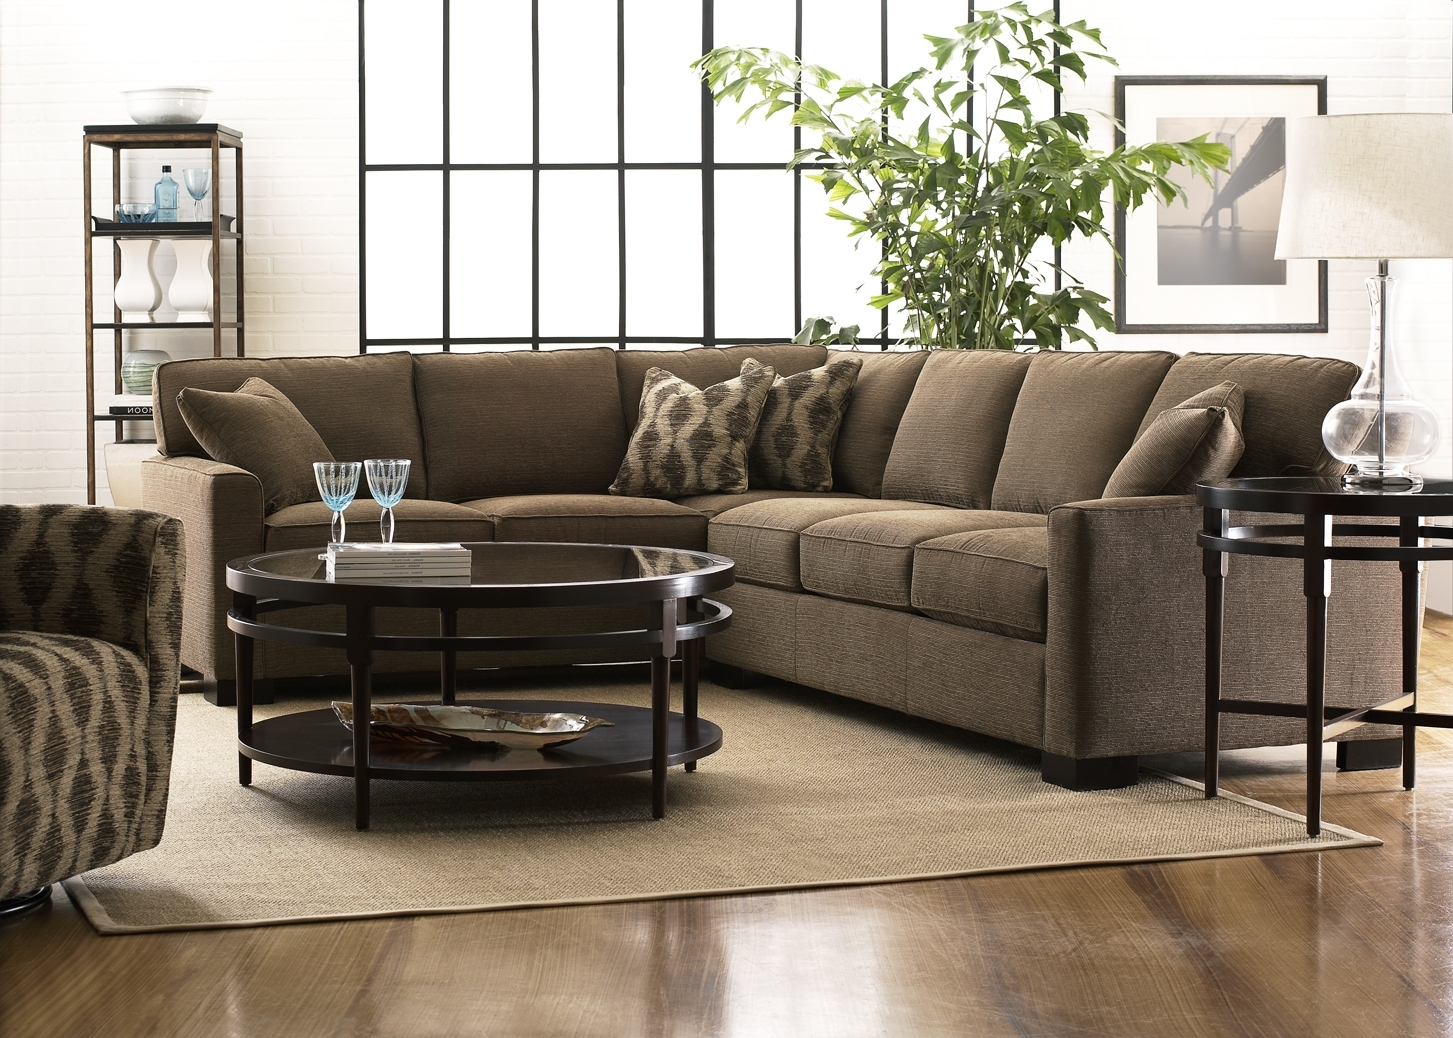 Small Room Design: Best Sofas For Small Living Rooms Small With 2019 Sectional Sofas With Recliners For Small Spaces (View 7 of 20)